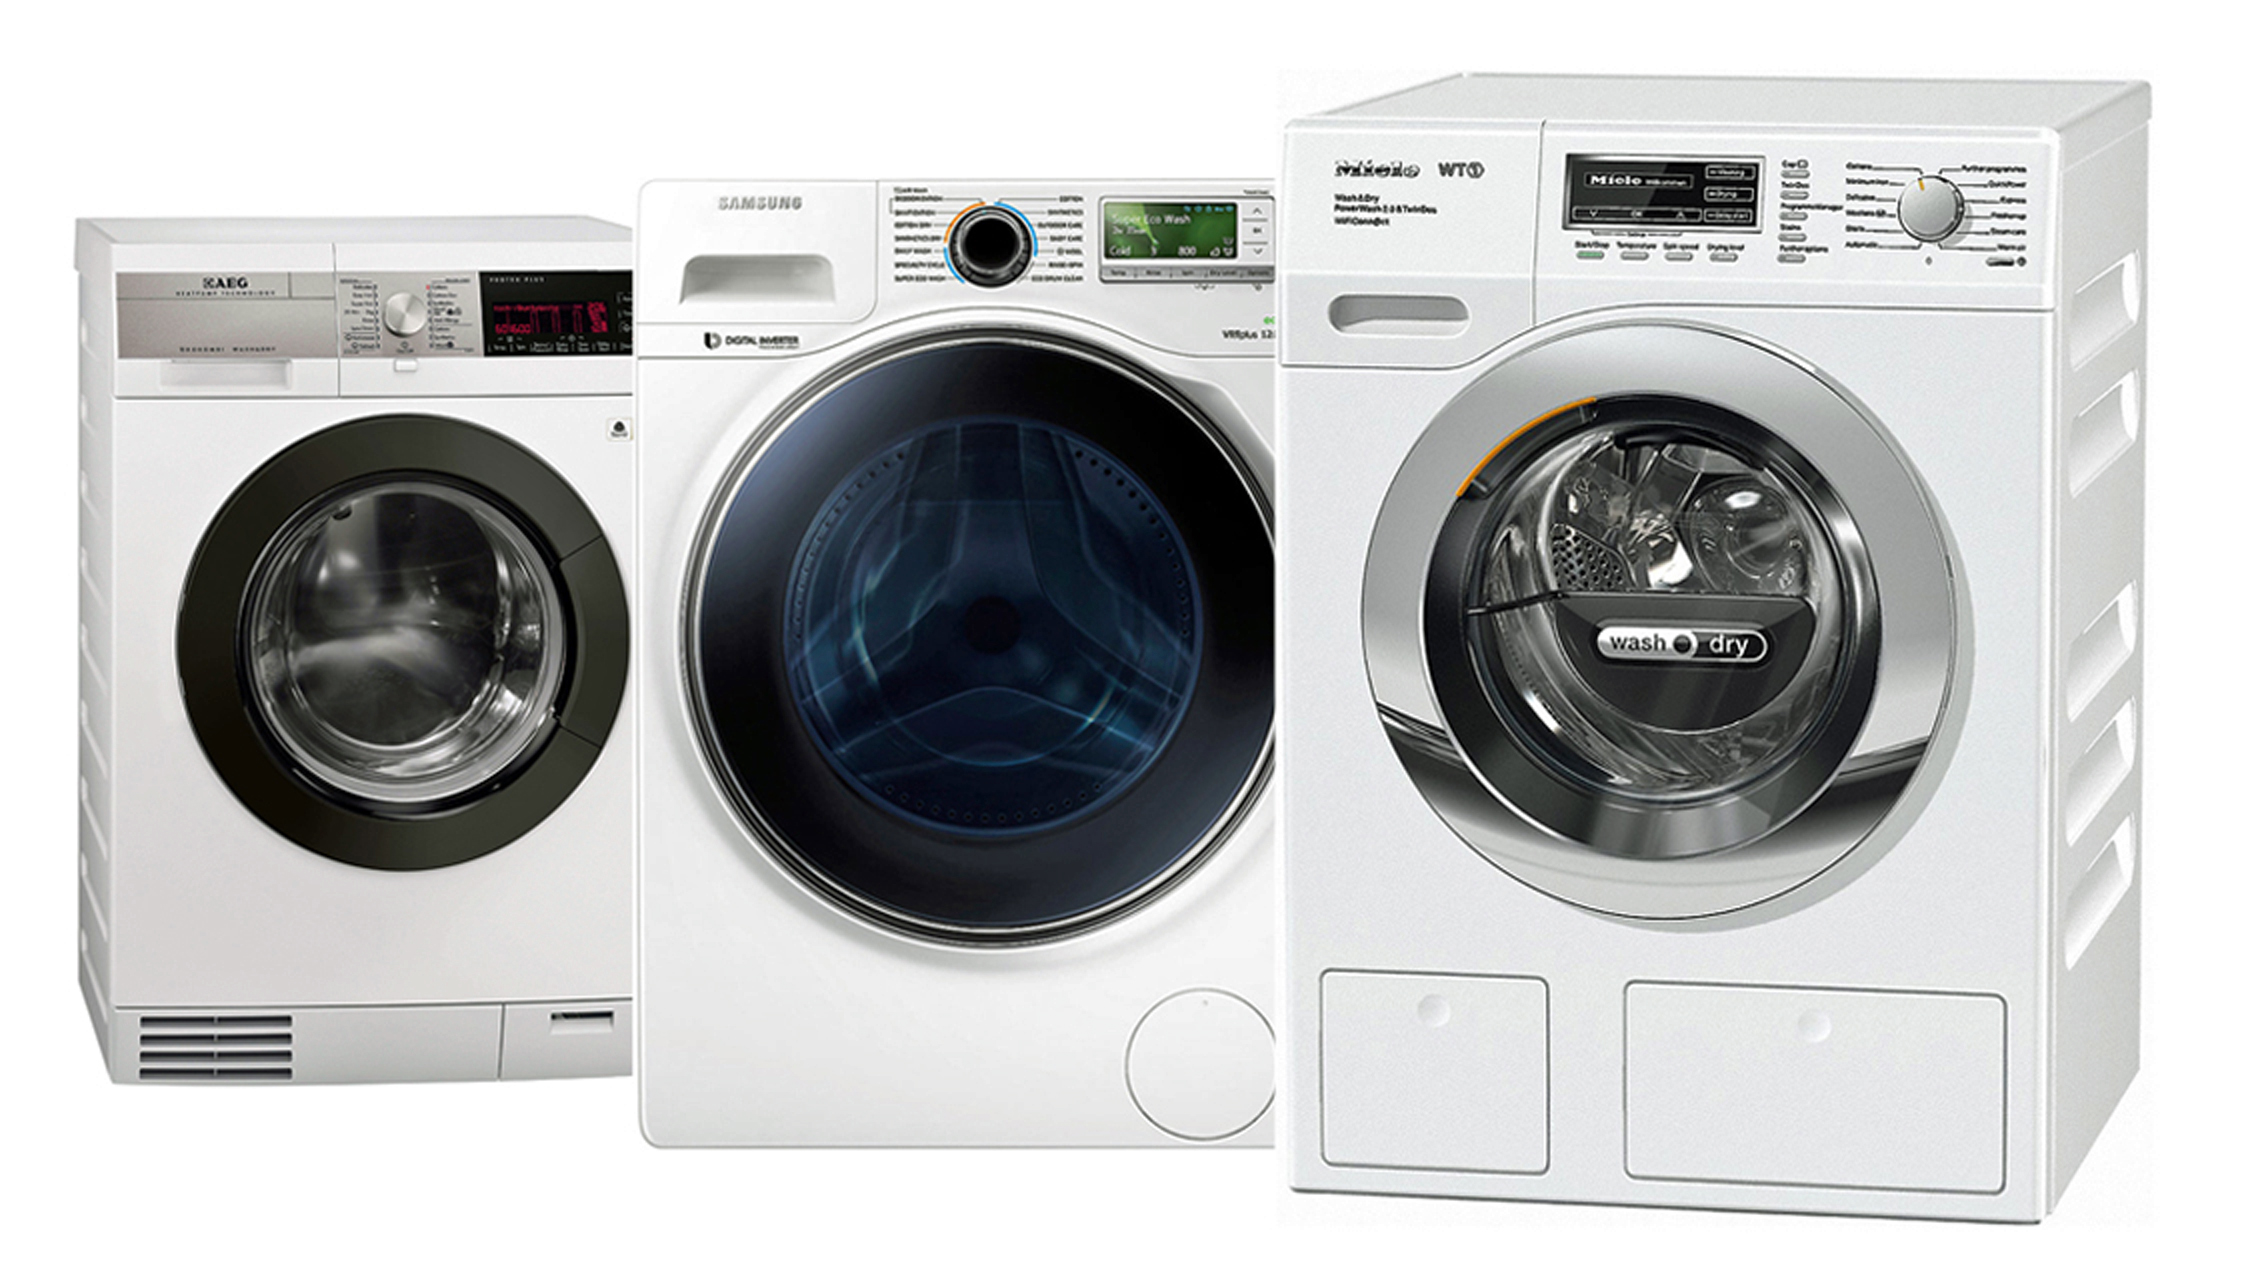 Best Washer Dryer 2019 The Ultimate Two In One For Laundry T3